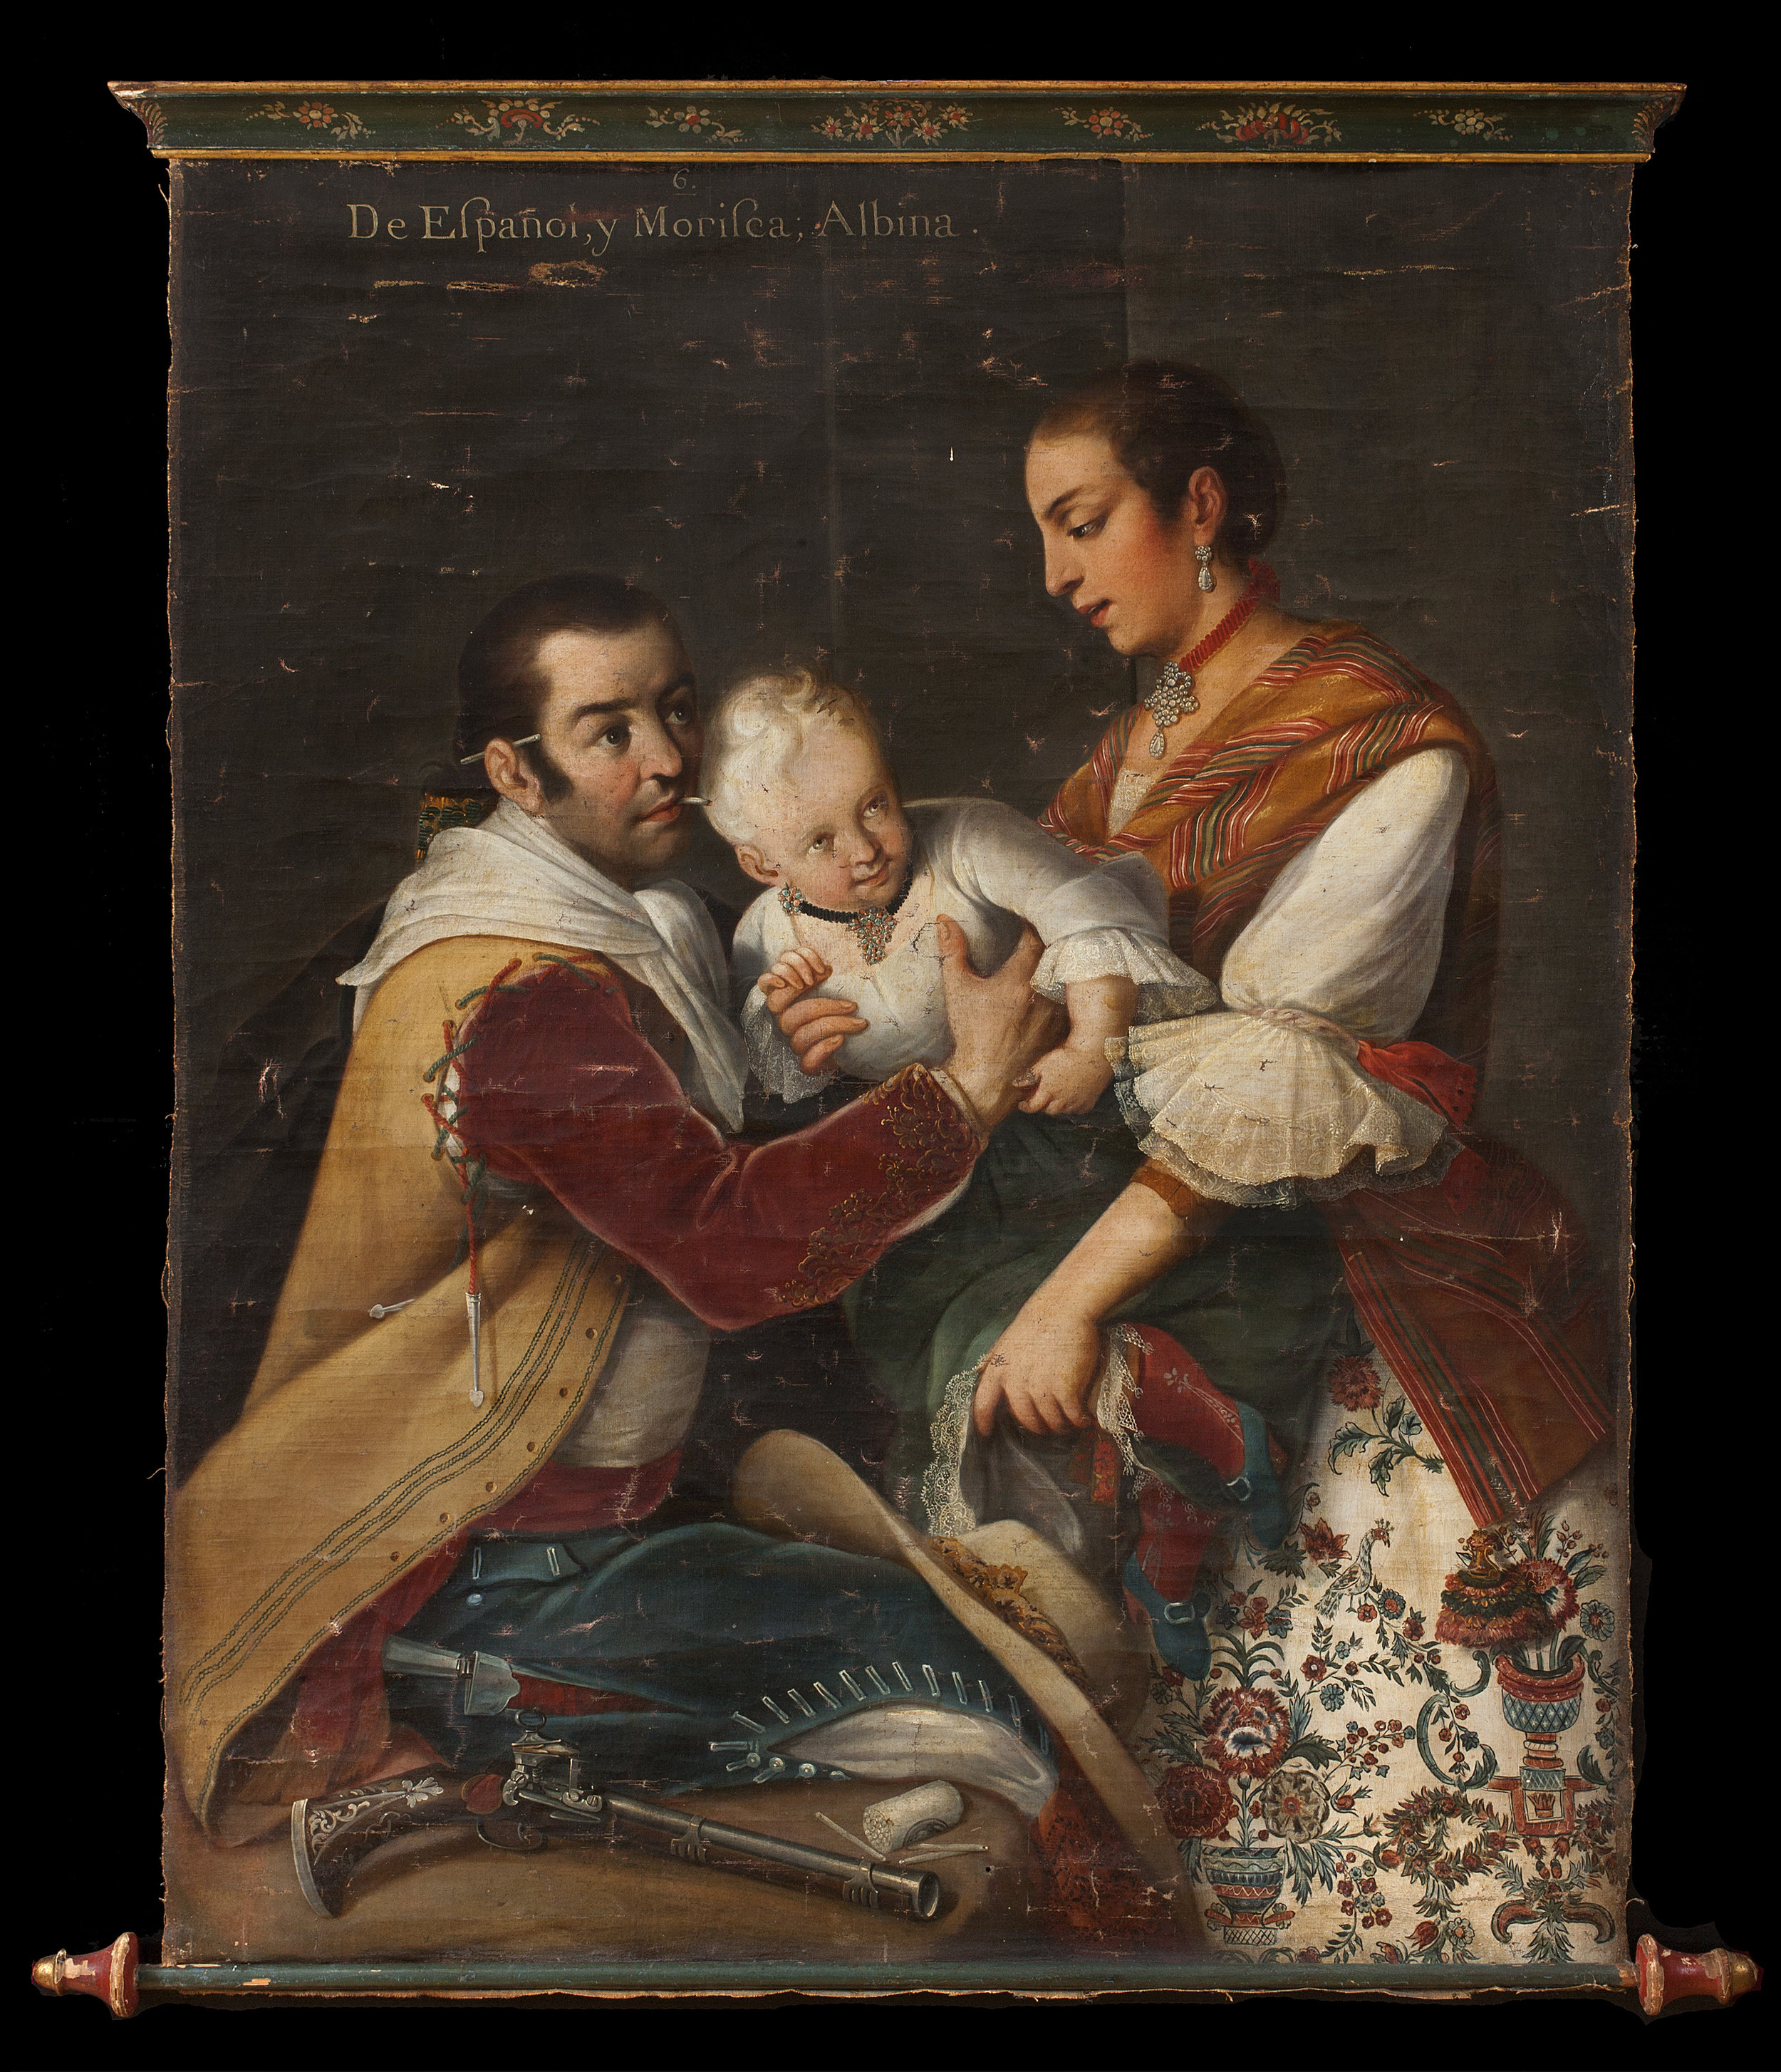 We are pleased to announce the sale of a highly important painting by the Mexican master Miguel Cabrera to the Los Angeles County Museum of Art. -